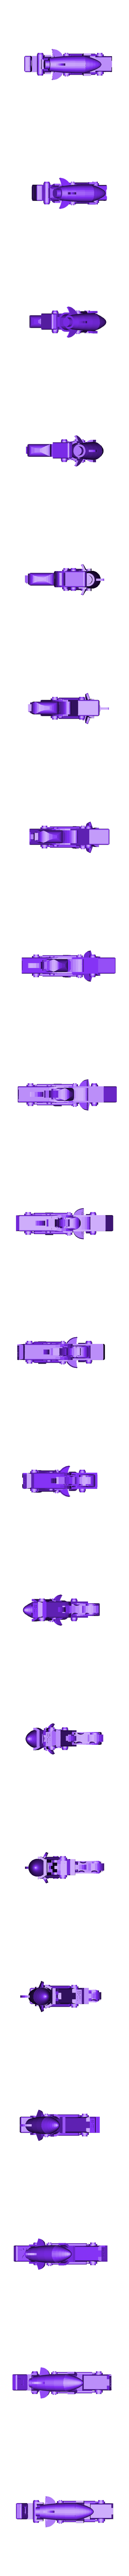 Fortnite_Tiny_Instrument_Of_Death_1.stl Download free STL file Fortnite Tiny Instrument Of Death • Object to 3D print, Z-mech